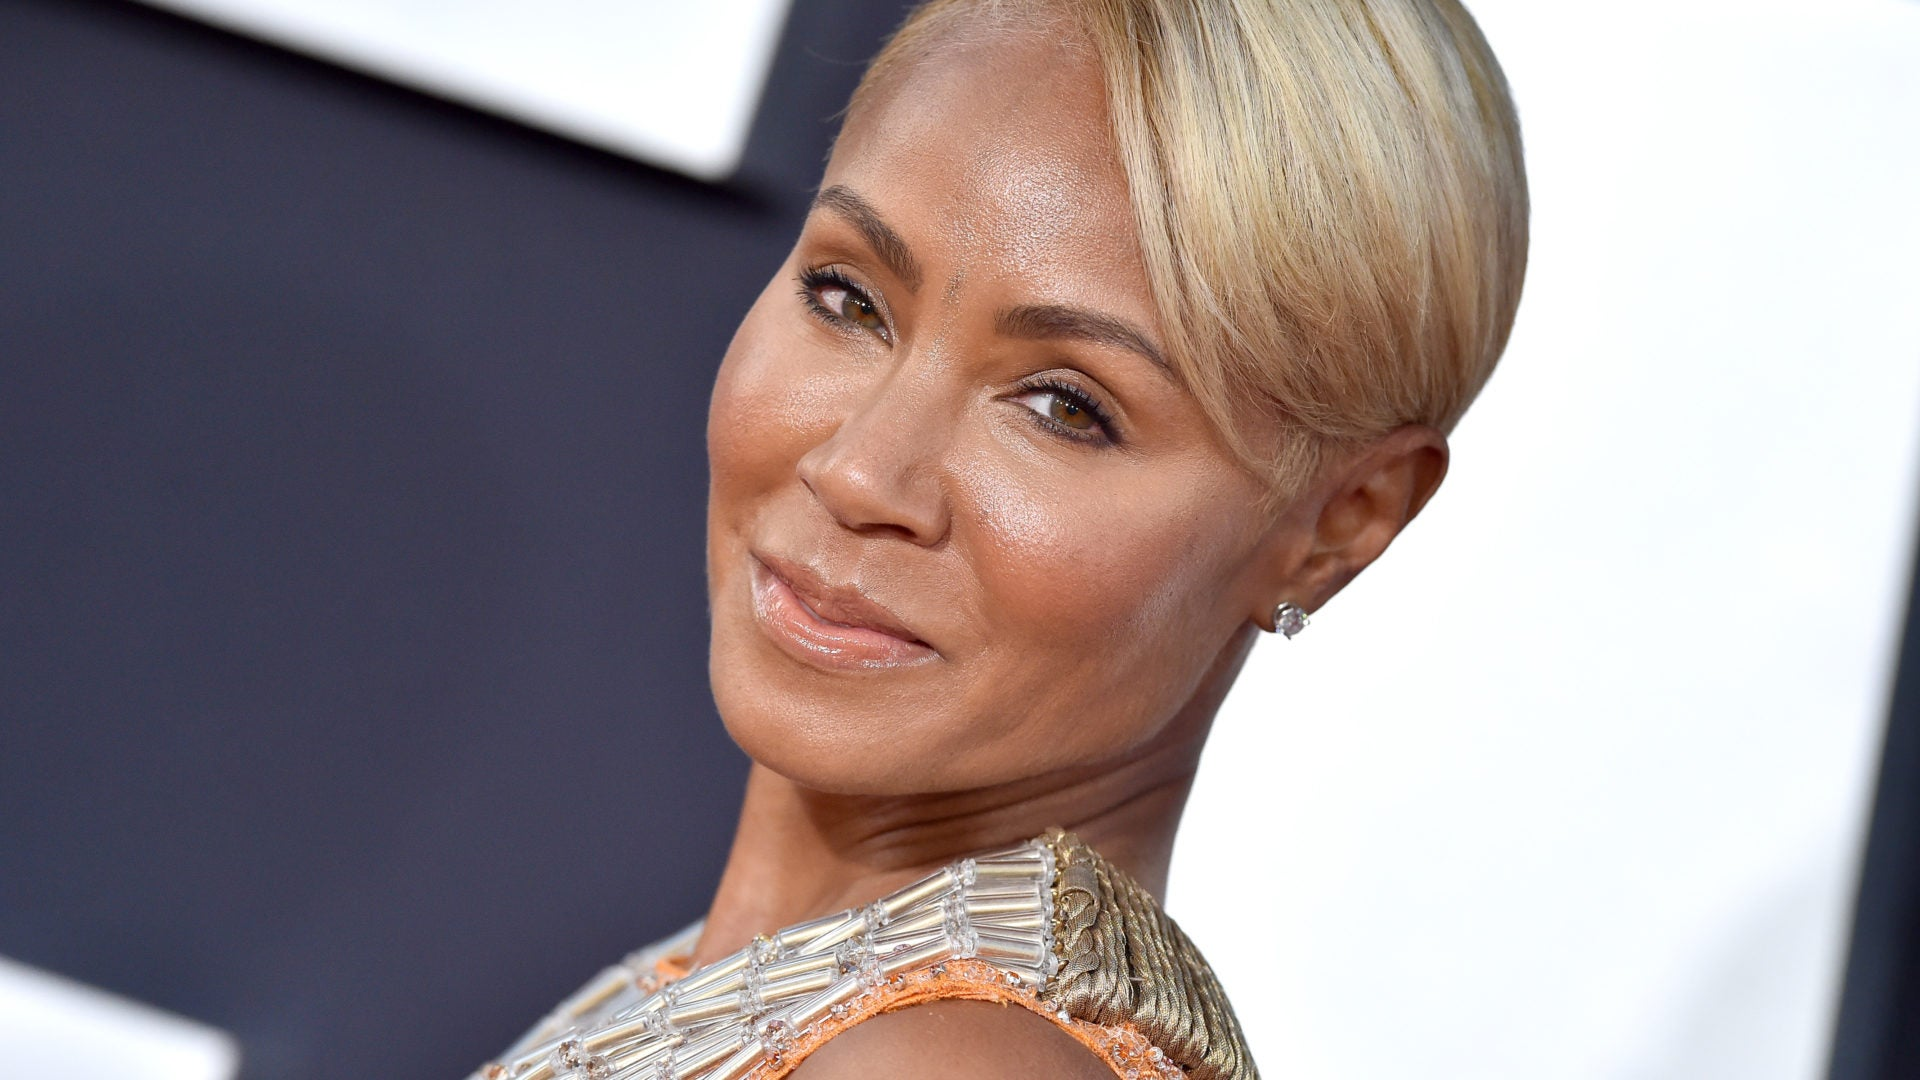 Jada Pinkett Smith Created A Safe Space With 'Red Table Talk'